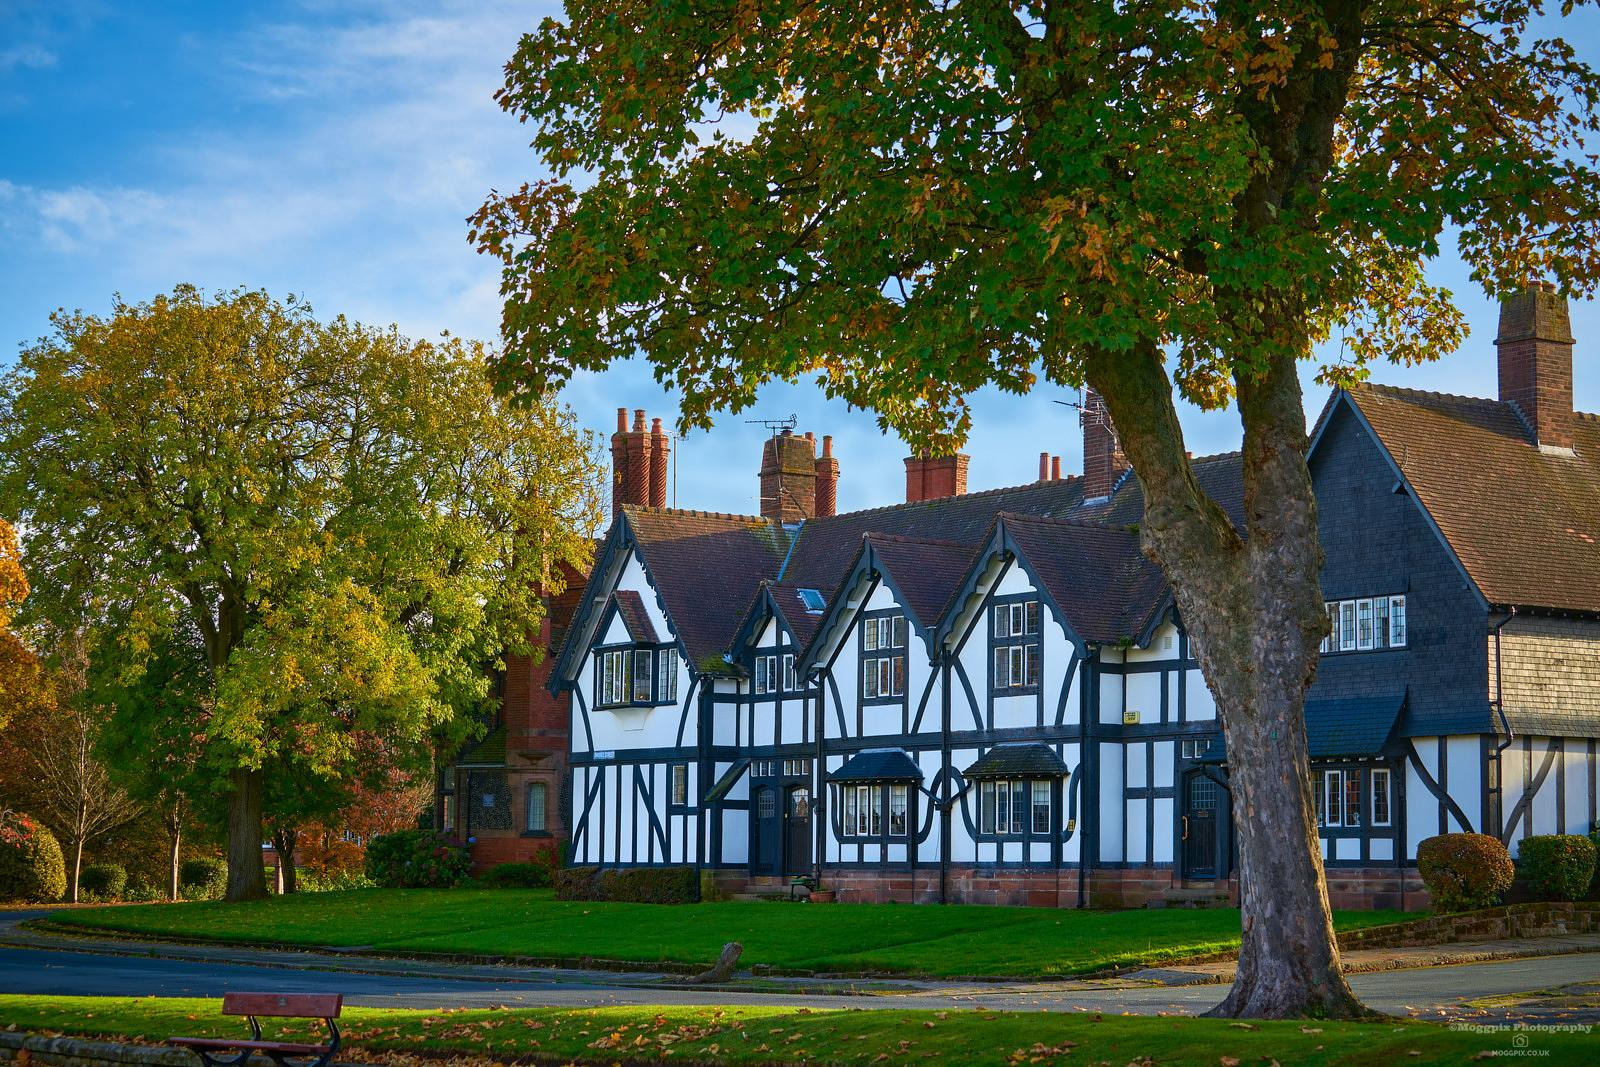 A Late Autumn Afternoon in Port Sunlight Village